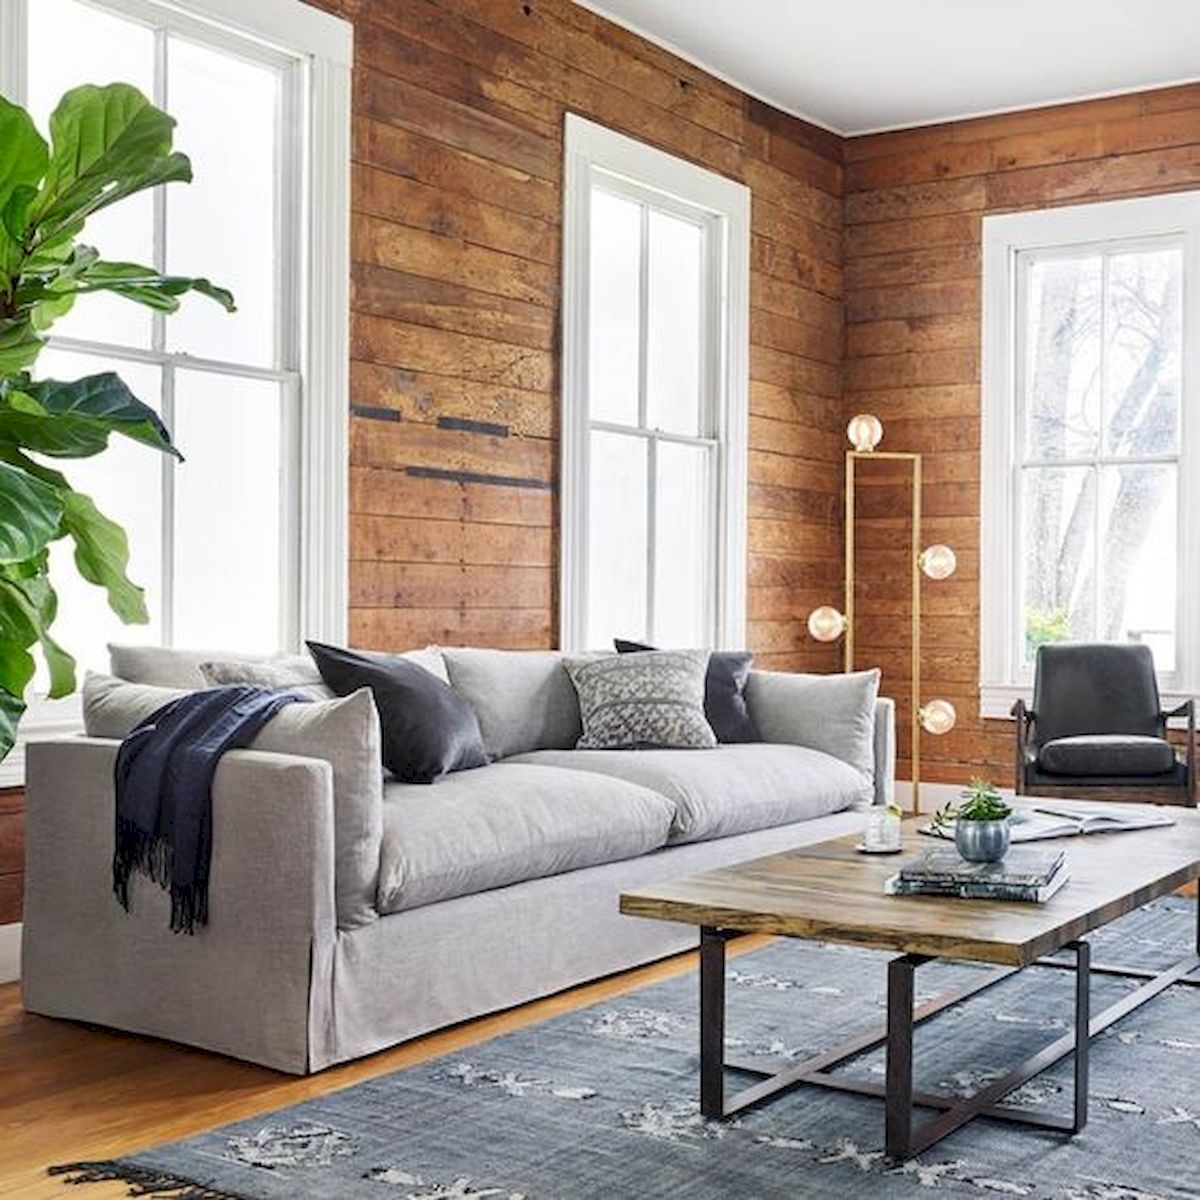 72 Industrial Living Room Decor Ideas (8)